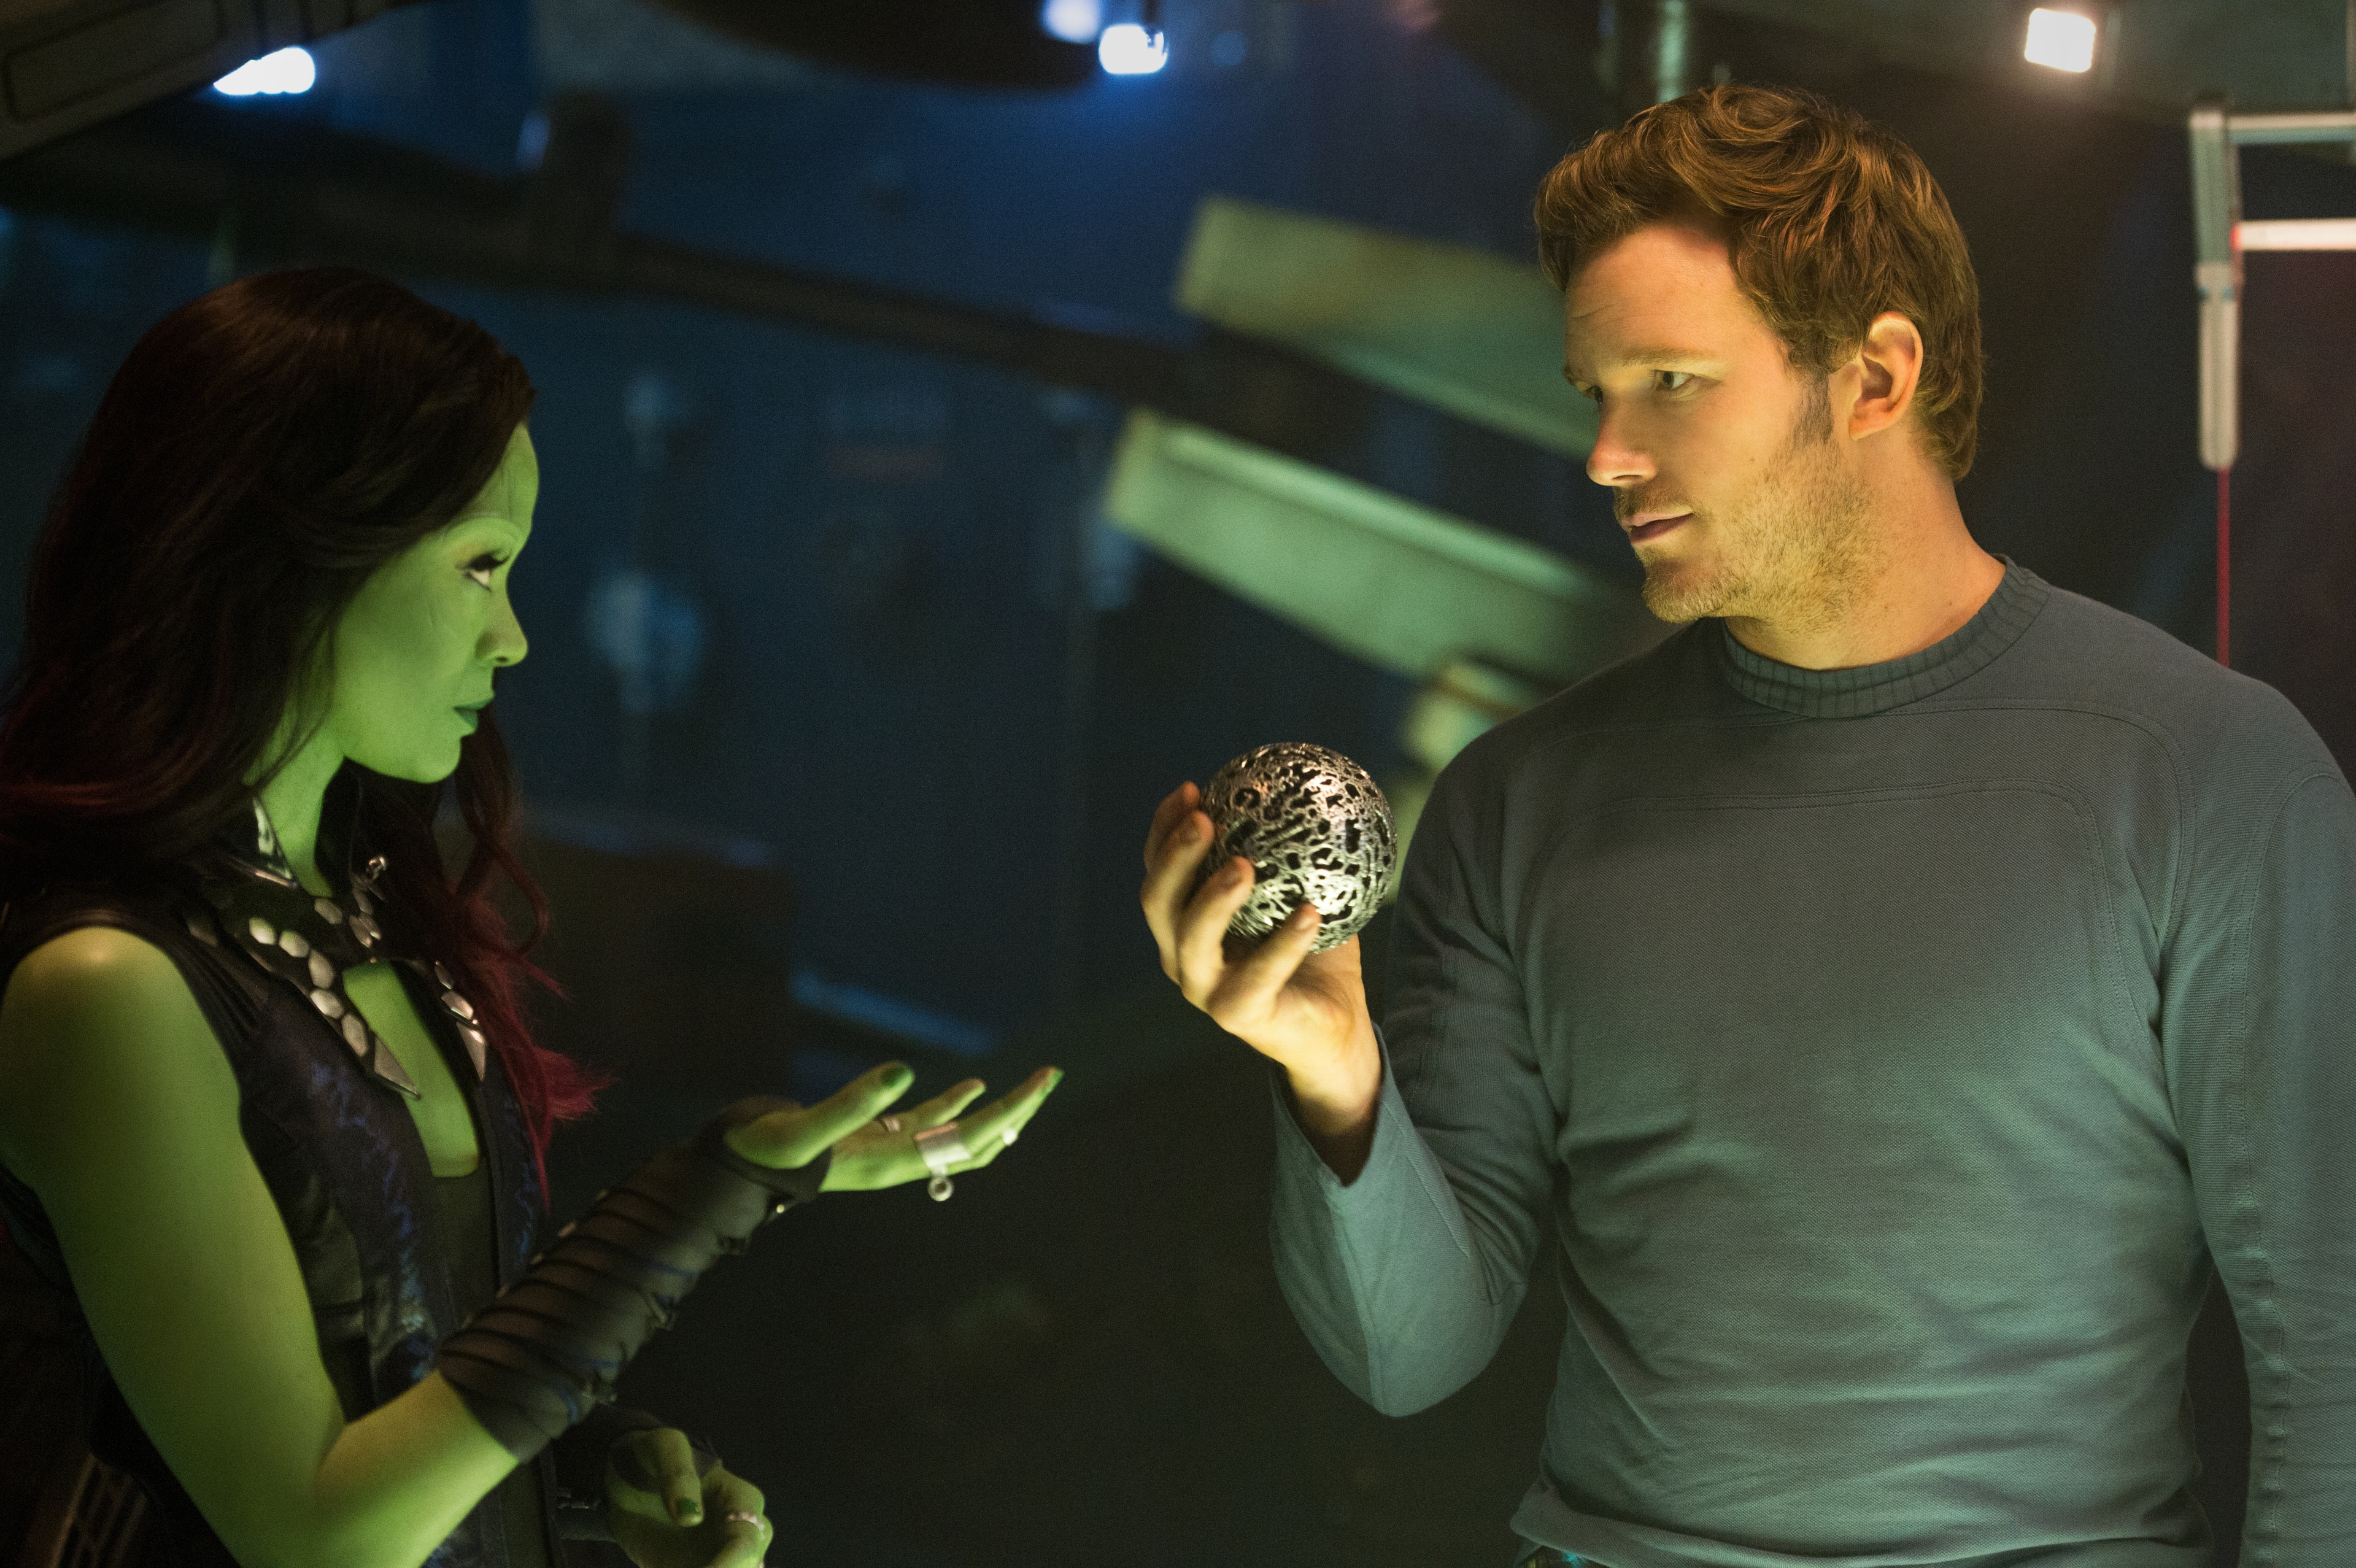 Gamora and Quill talking in Guardians of the Galaxy while Quill holds an orb